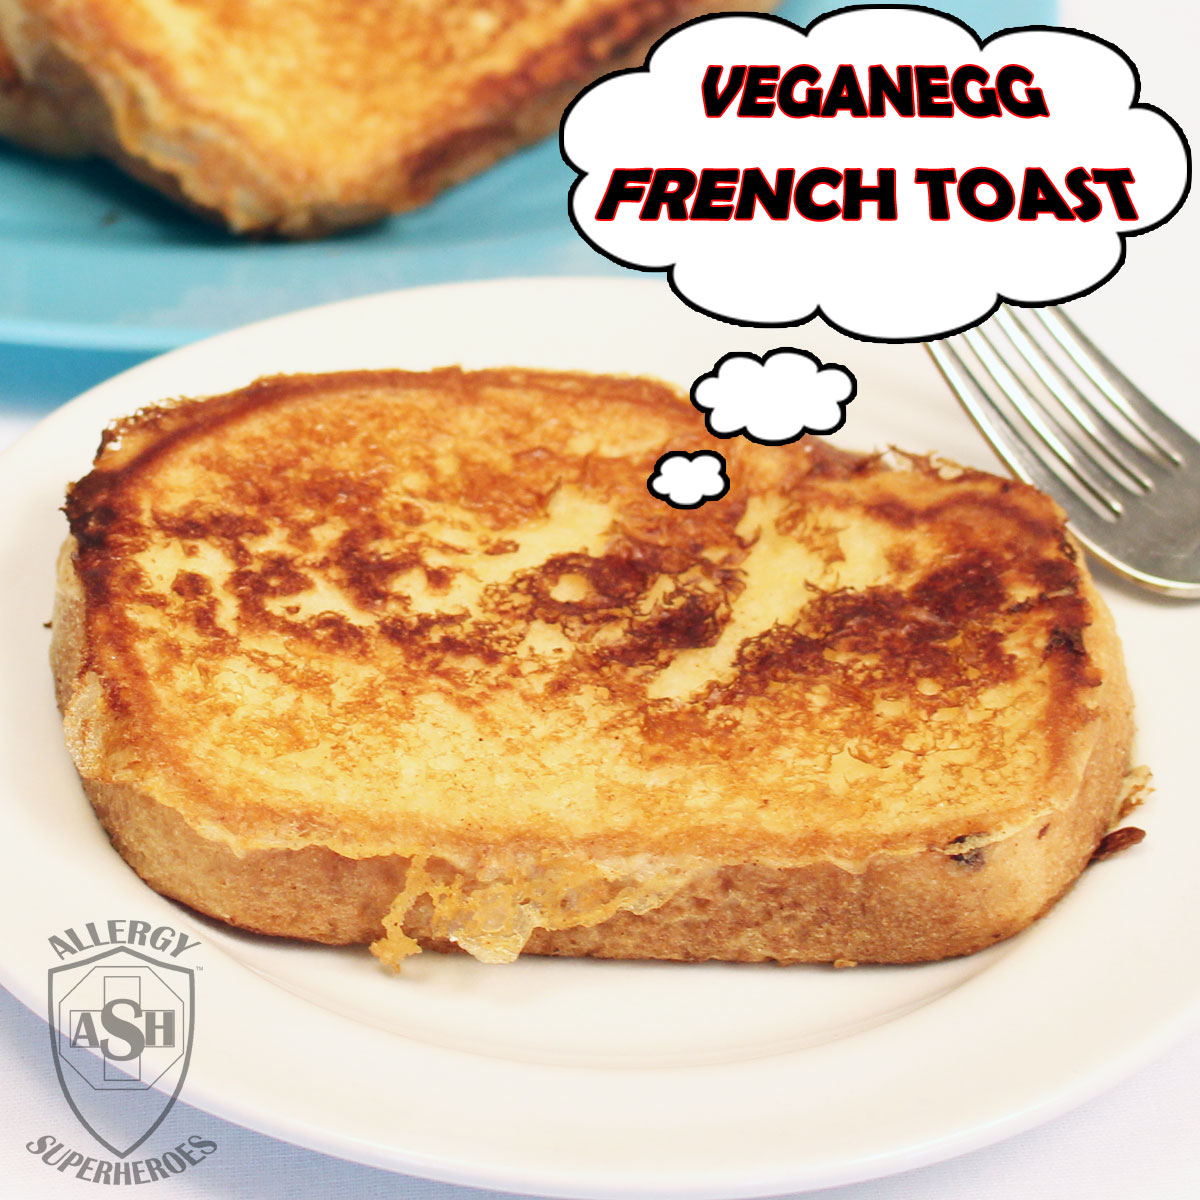 Vegan-Egg-French-Toast-recipe-Food-Allergy-Superheroes Egg Free